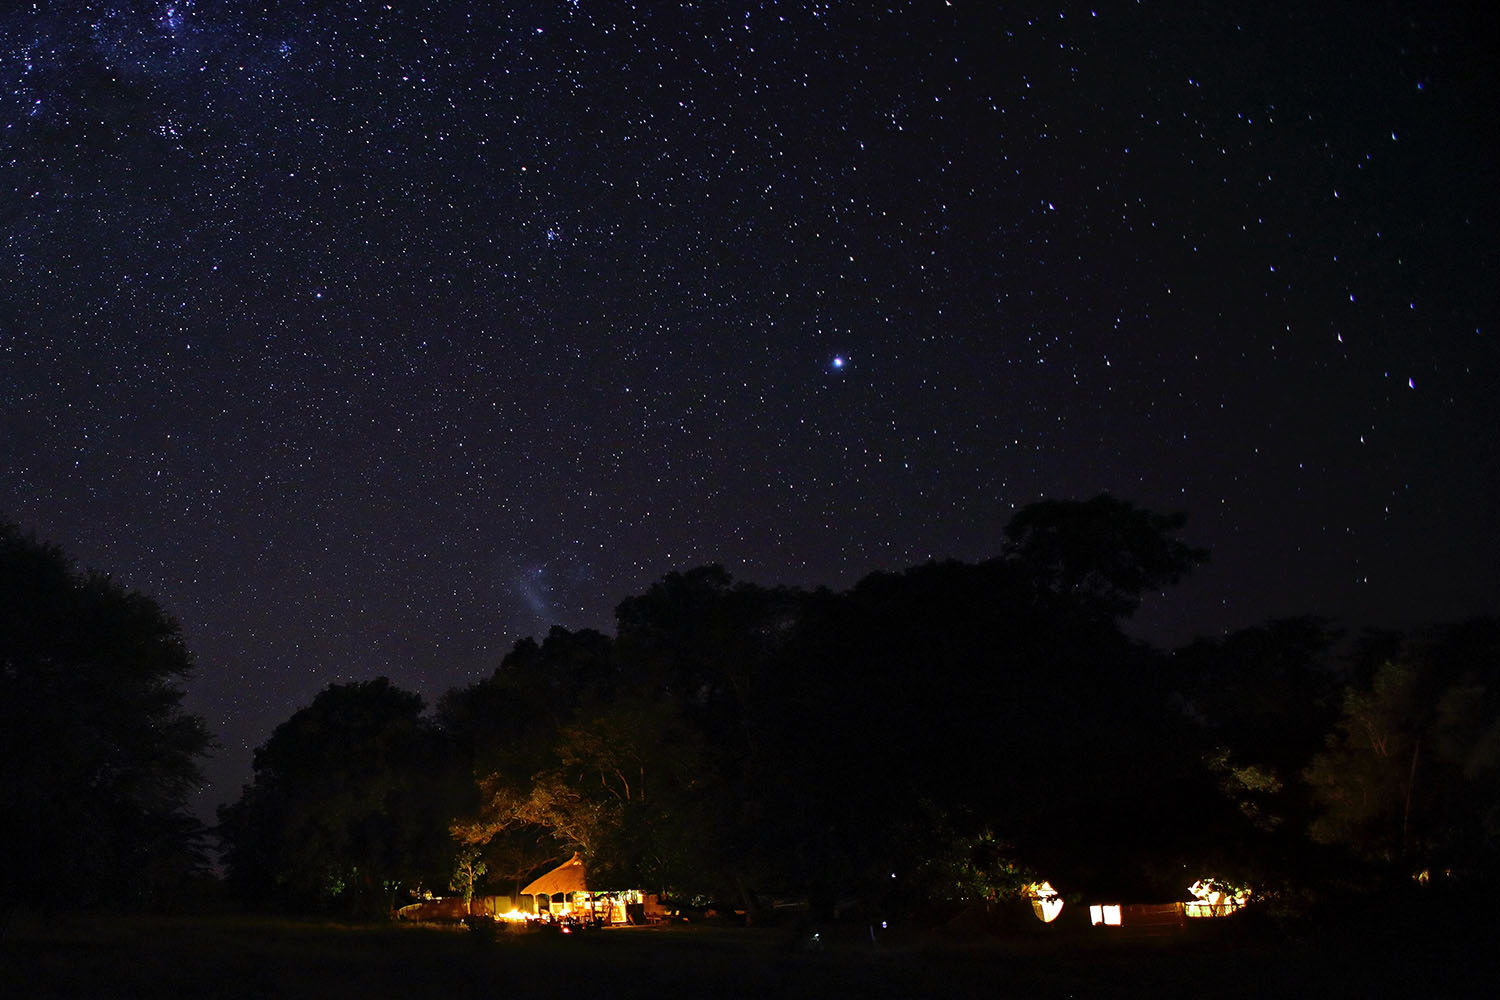 luwi-camp-lodge-zambia-in-style-tours-safari-packages-lodges-south-luangwa-national-park-night-sky